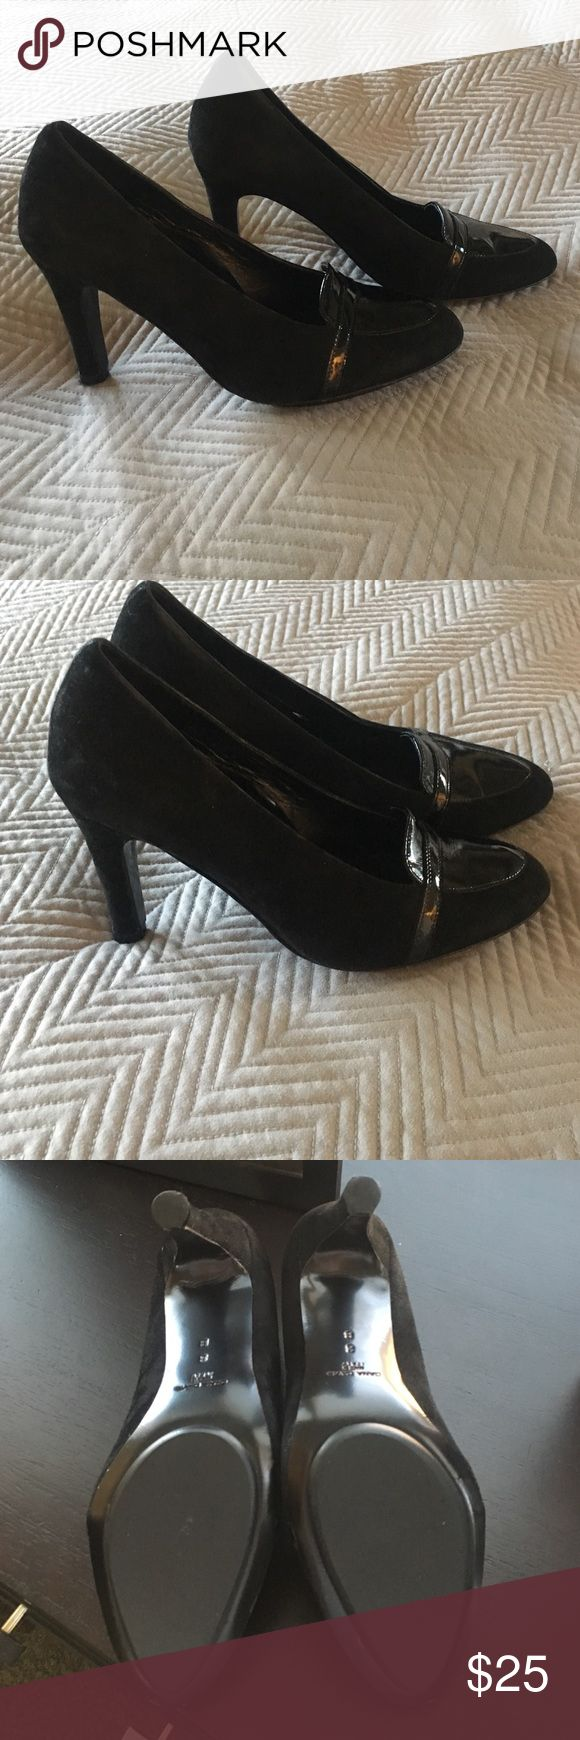 Beautiful black suede Dana Davis pumps Nordstrom Made in Italy  gently worn a few times. Great condition. Sz8 with 3 inch heel black suede with black patent leather detail on top Dana Davis Shoes Heels